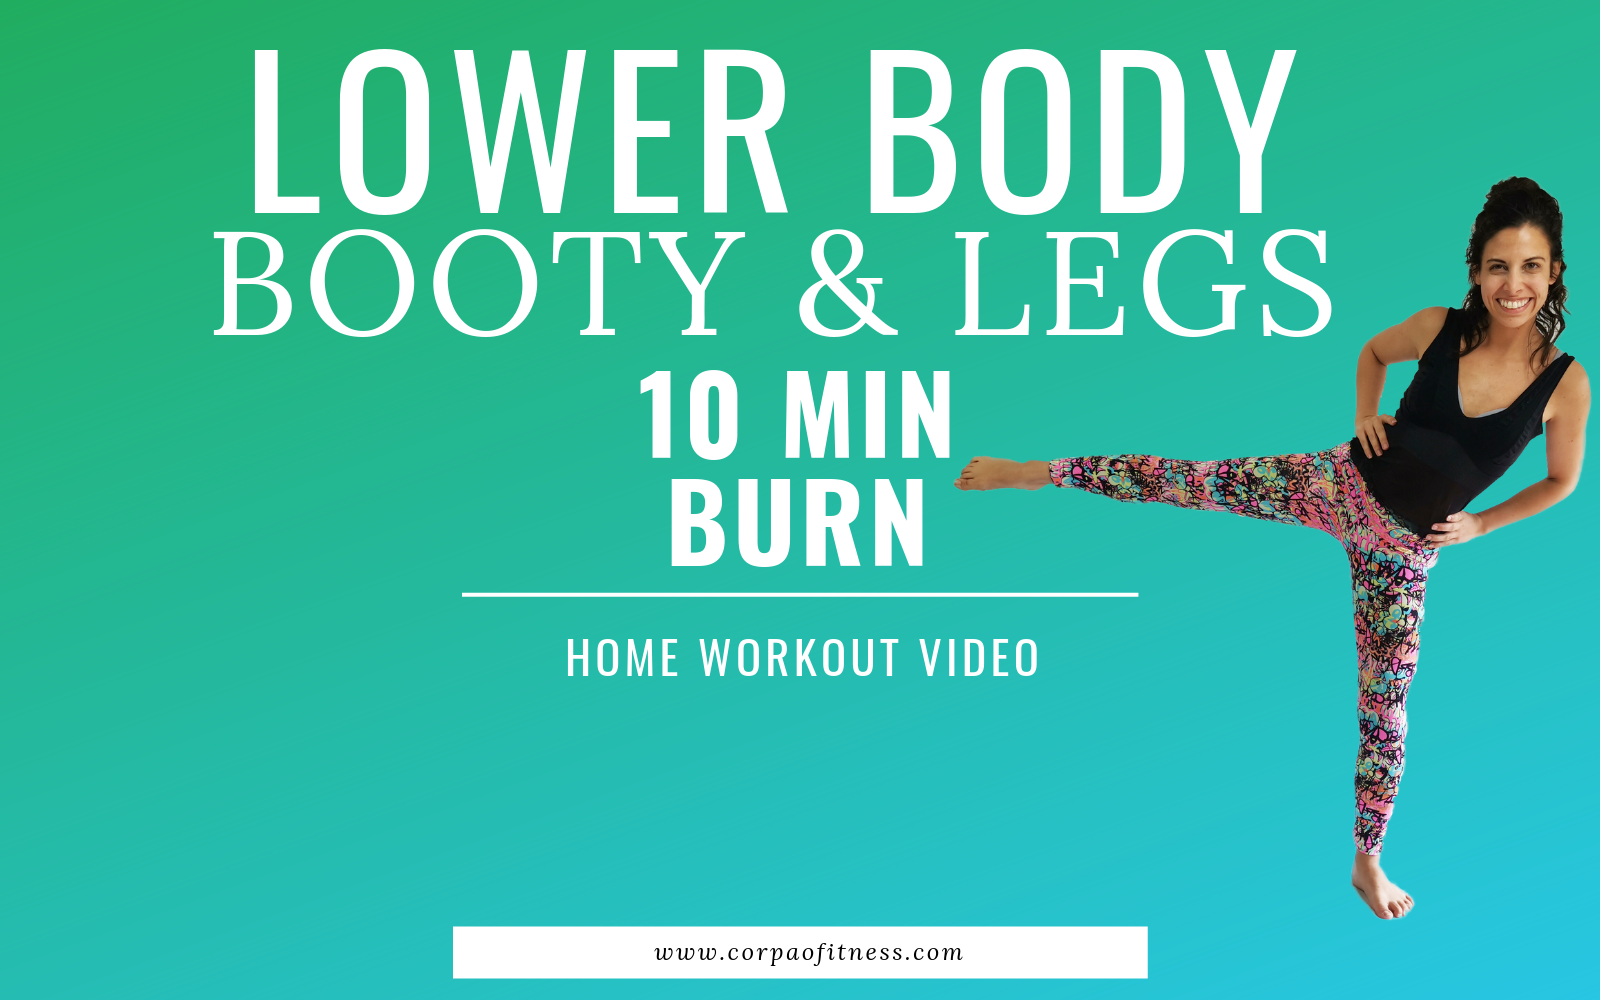 10 Minute Lower Body Workout: Booty and Legs